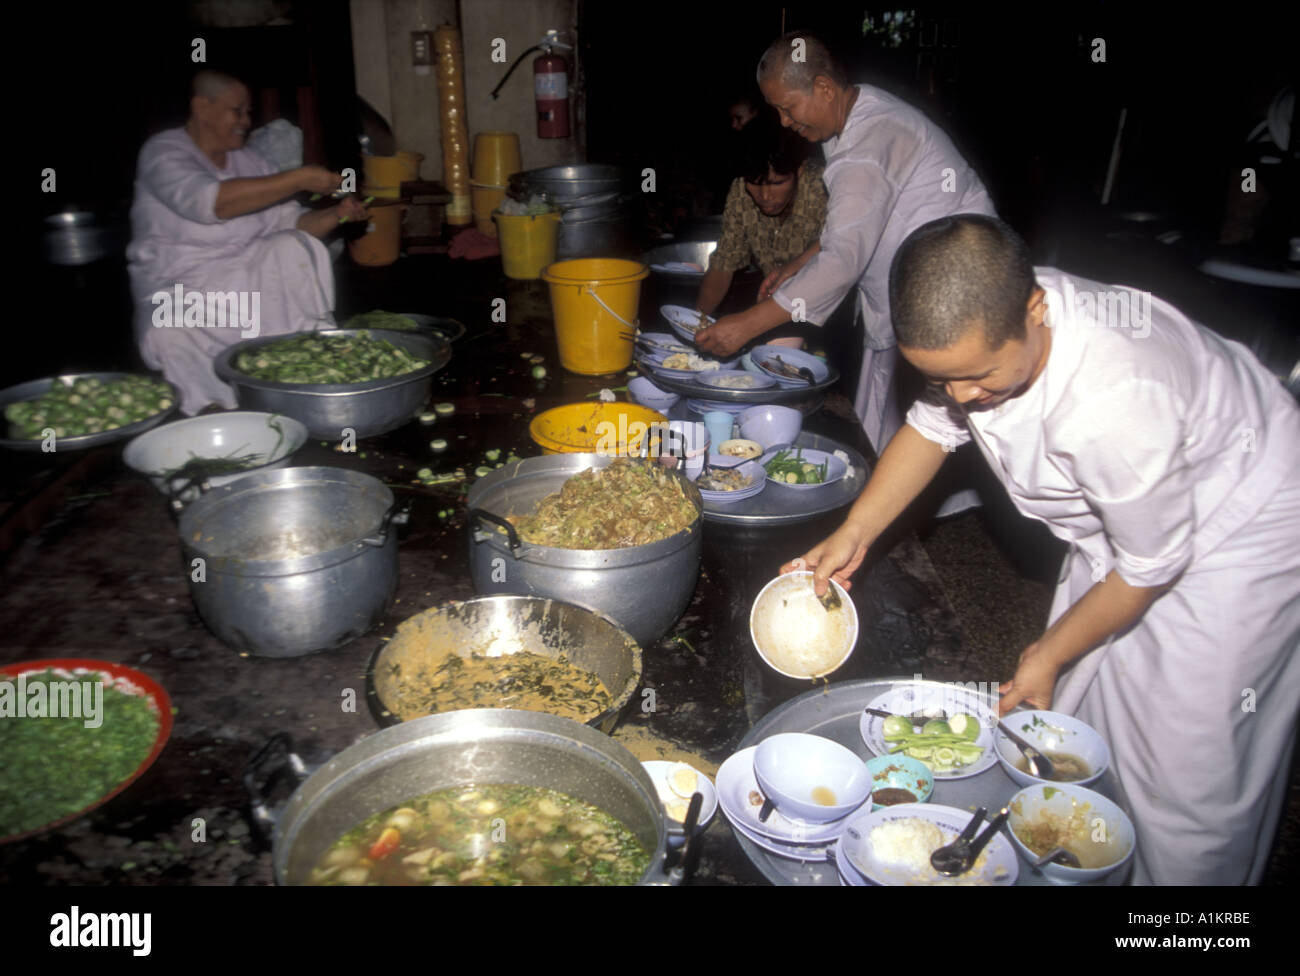 BUDDHISM nuns working in a monastery kitchen Thailand - Stock Image